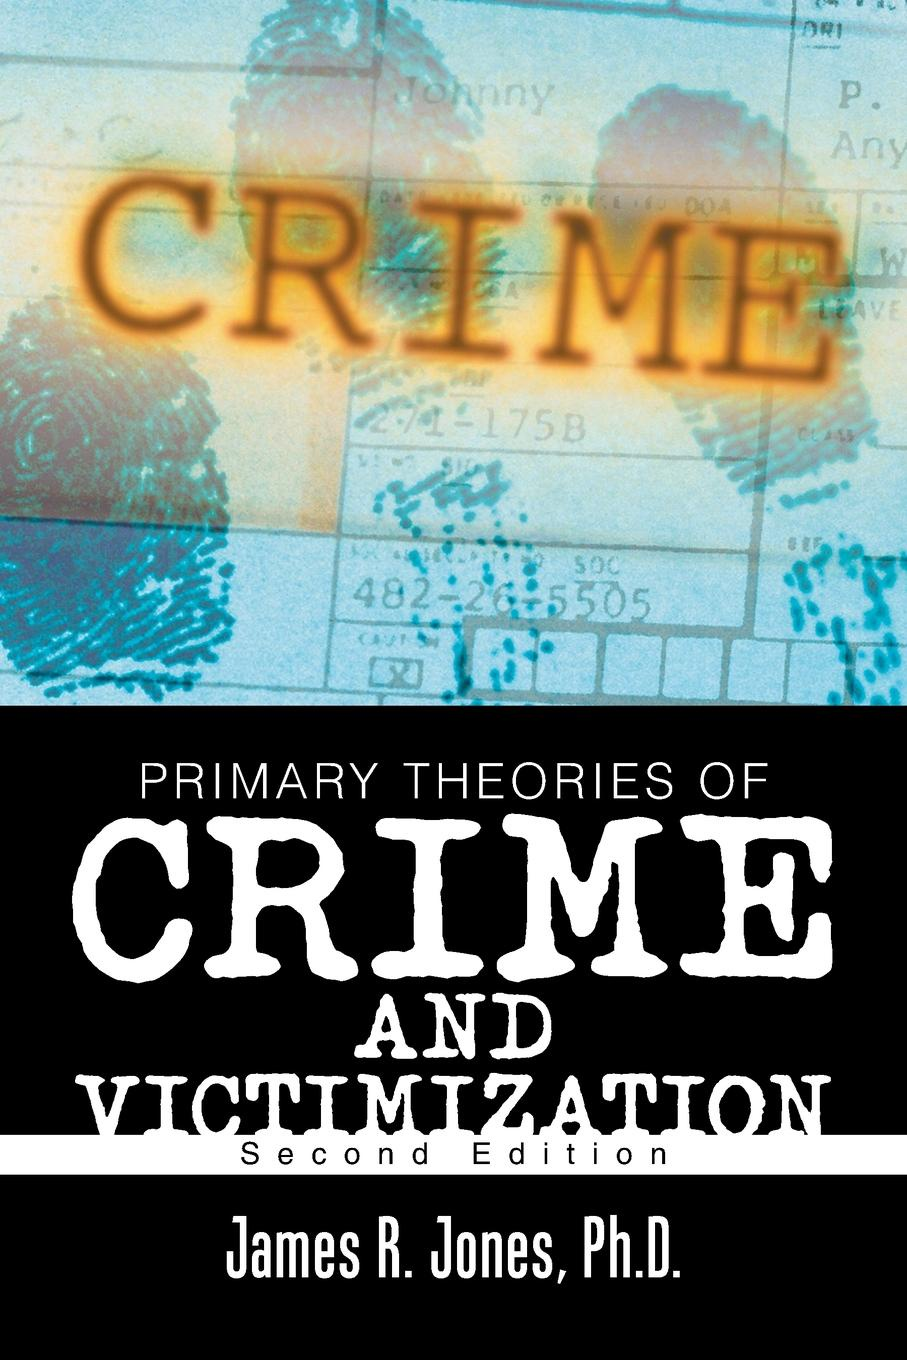 Ph.D. James R. Jones Primary Theories of Crime and Victimization. Second Edition donald smith j bond math the theory behind the formulas